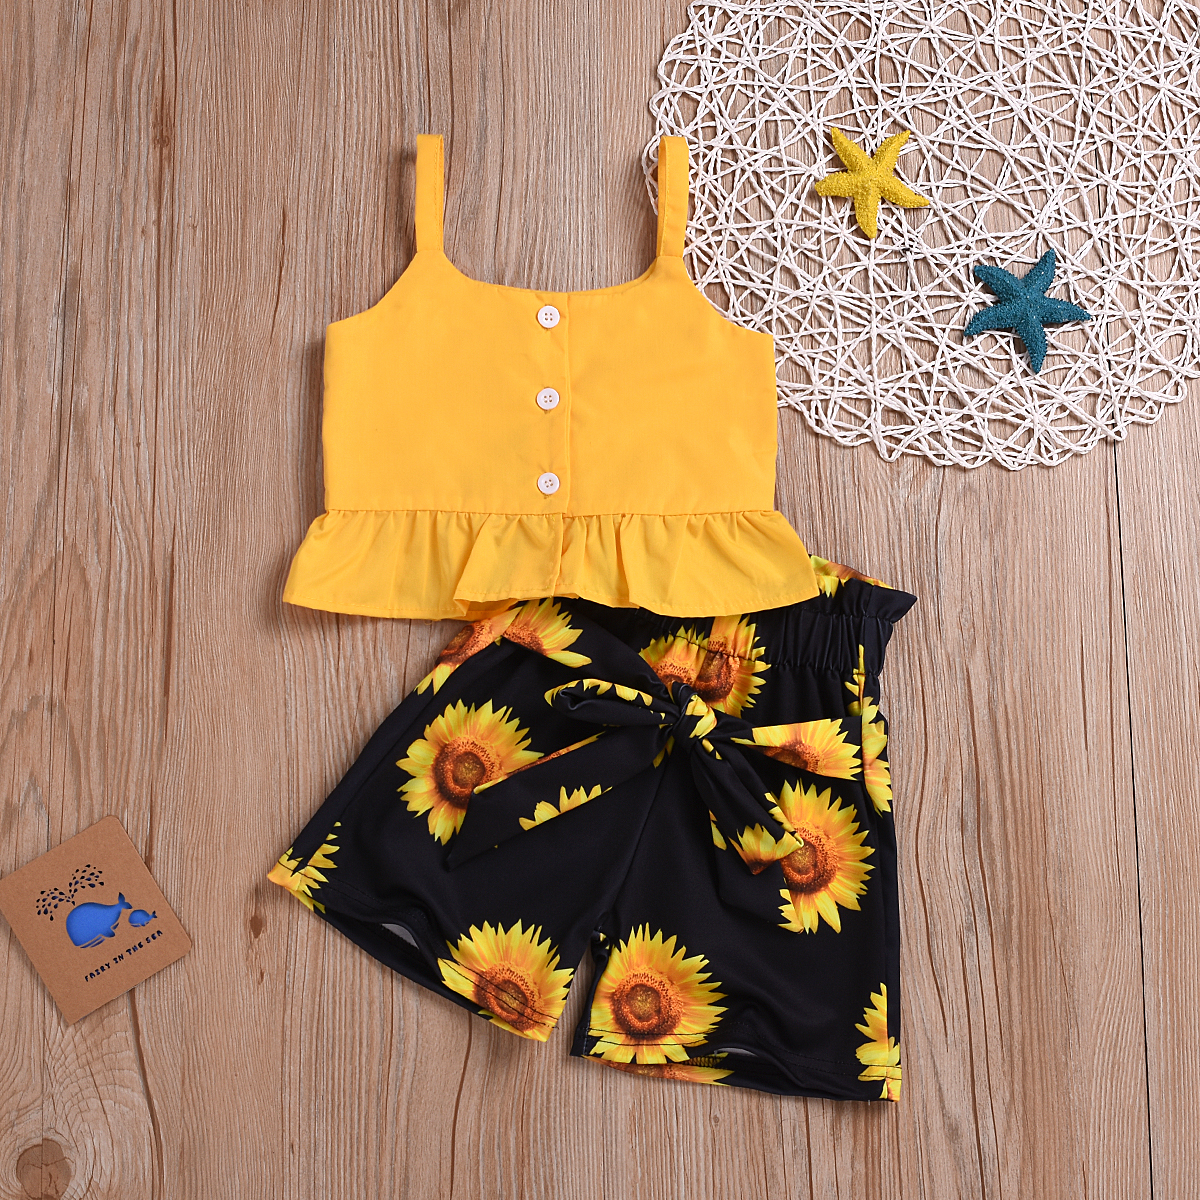 Pudcoco Toddler Baby Girl Clothes Sleeveless Strap Crop Ruffle Tops Sunflower Print Short Pants 2Pcs Outfits Clothes Summer